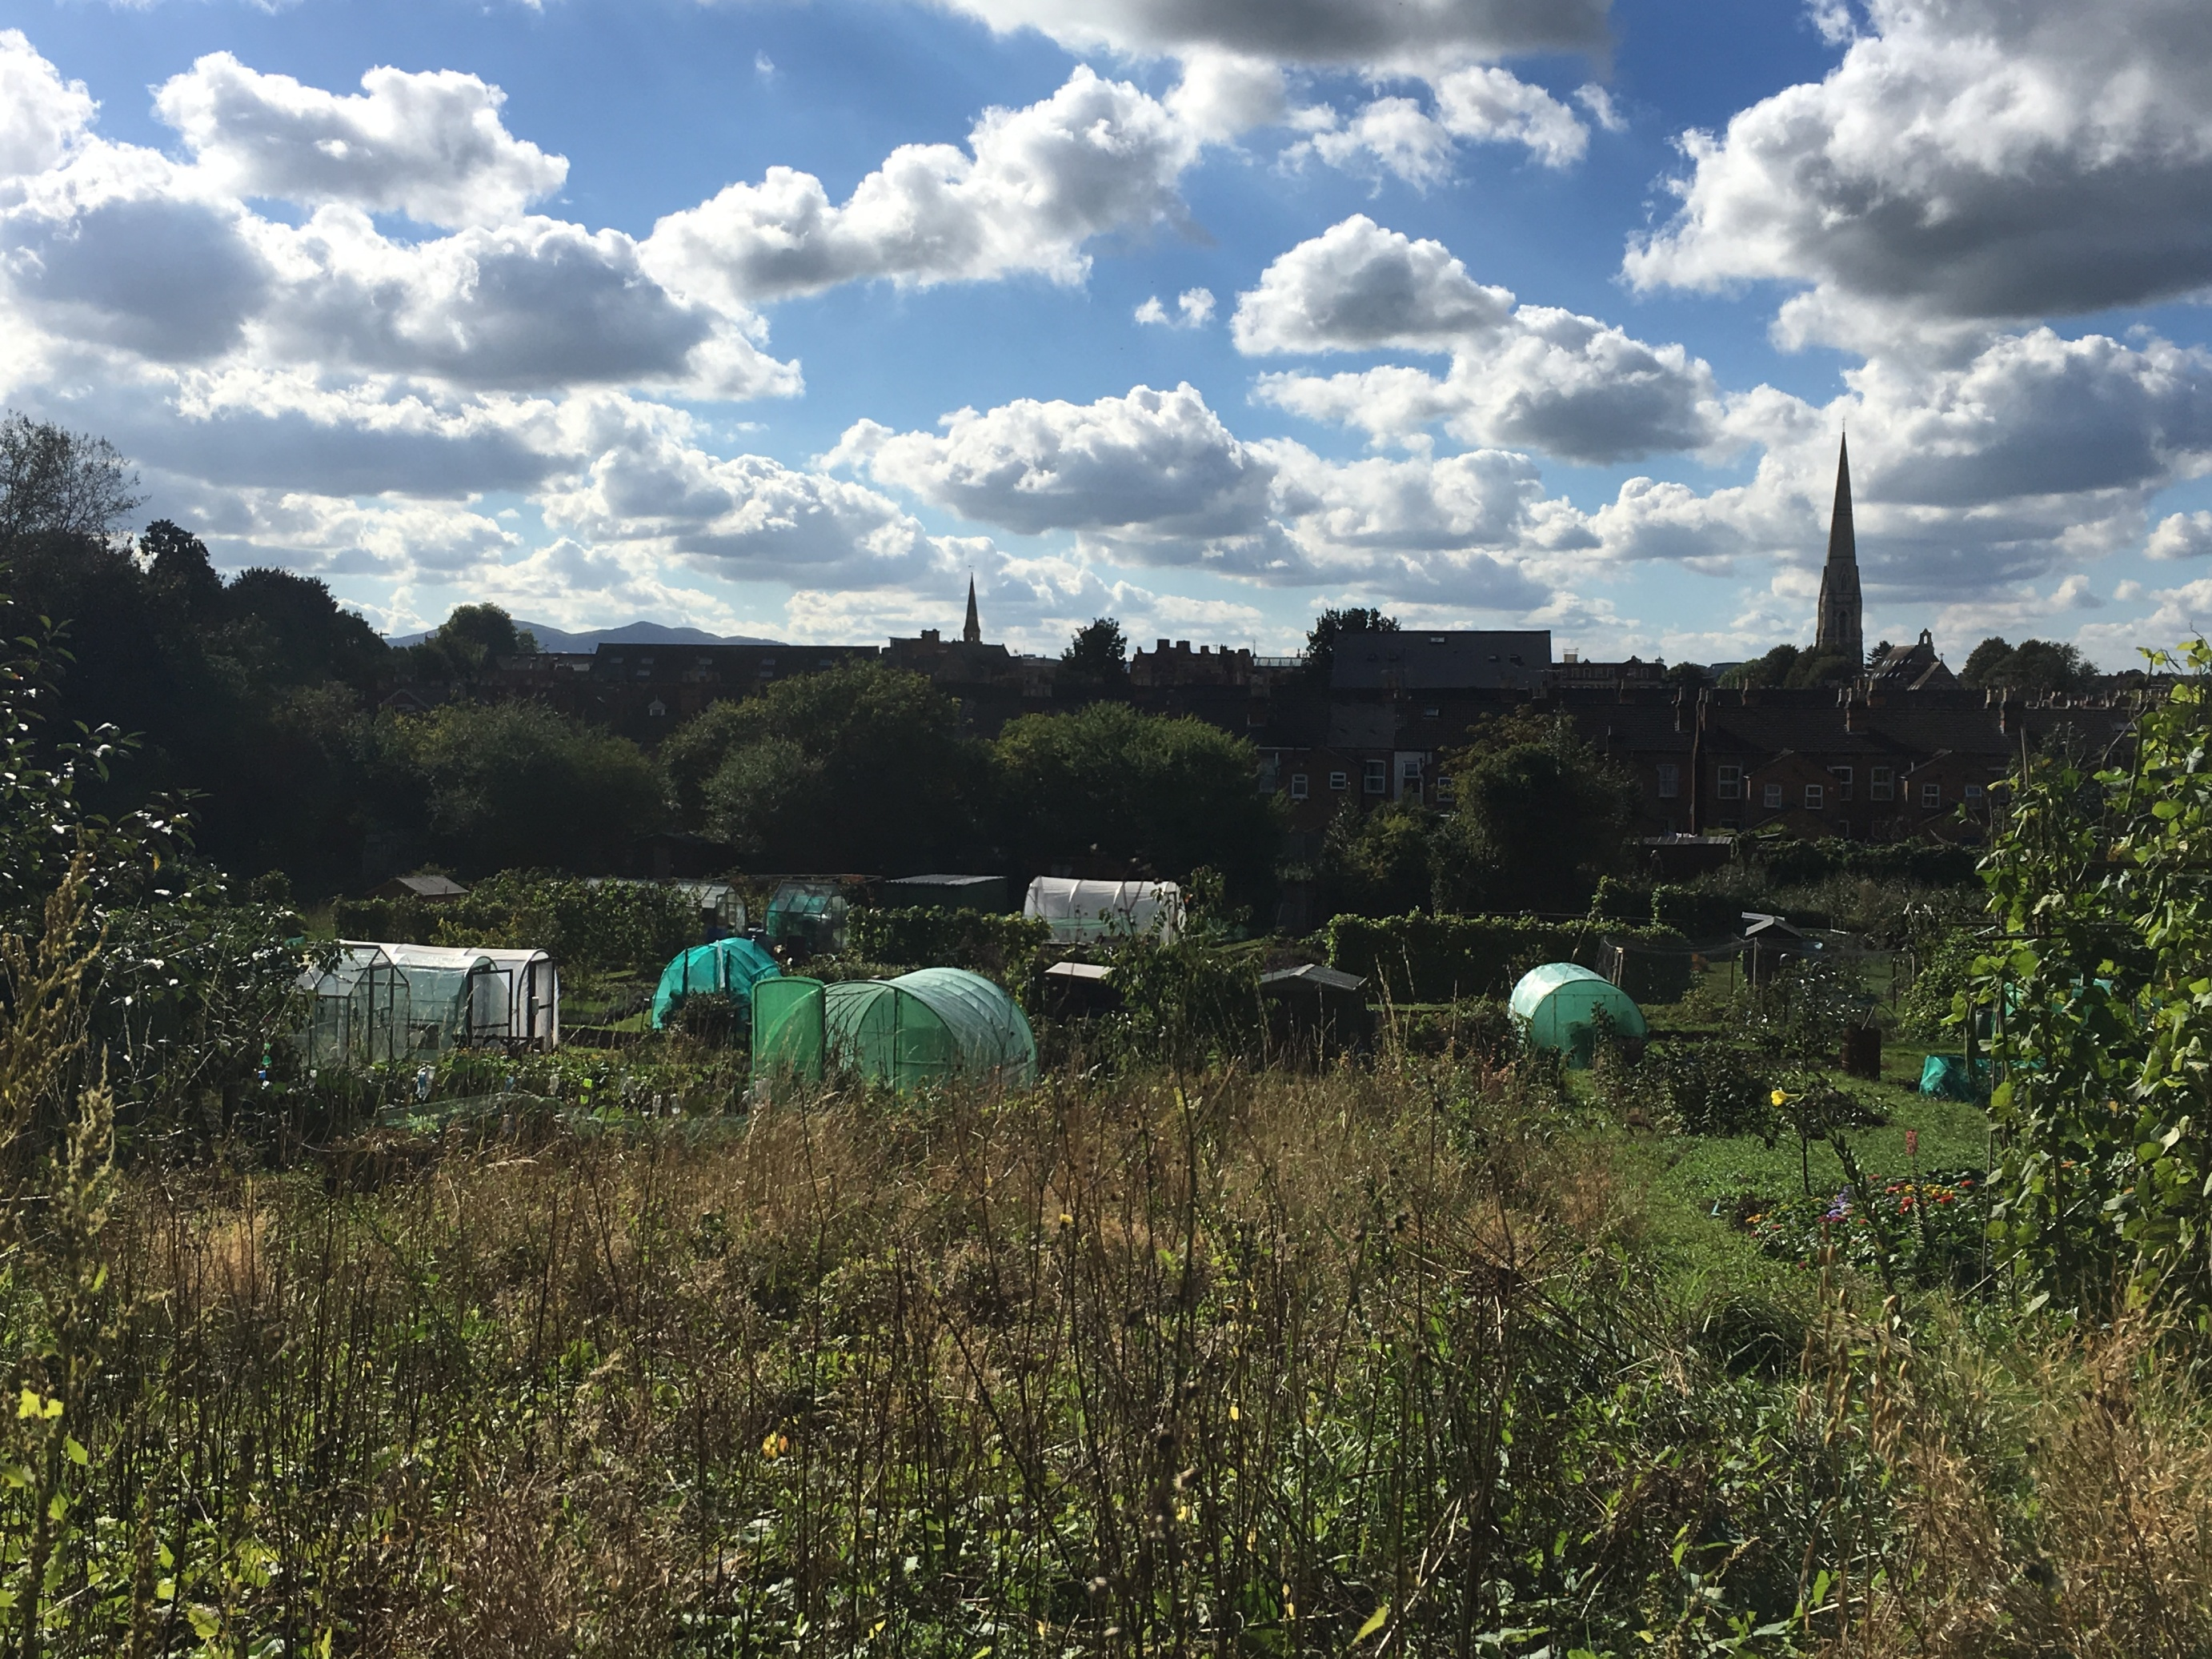 The Arboretum, Worcester, as seen from the allotments on the other side of the Worcester-Birmingham Canal